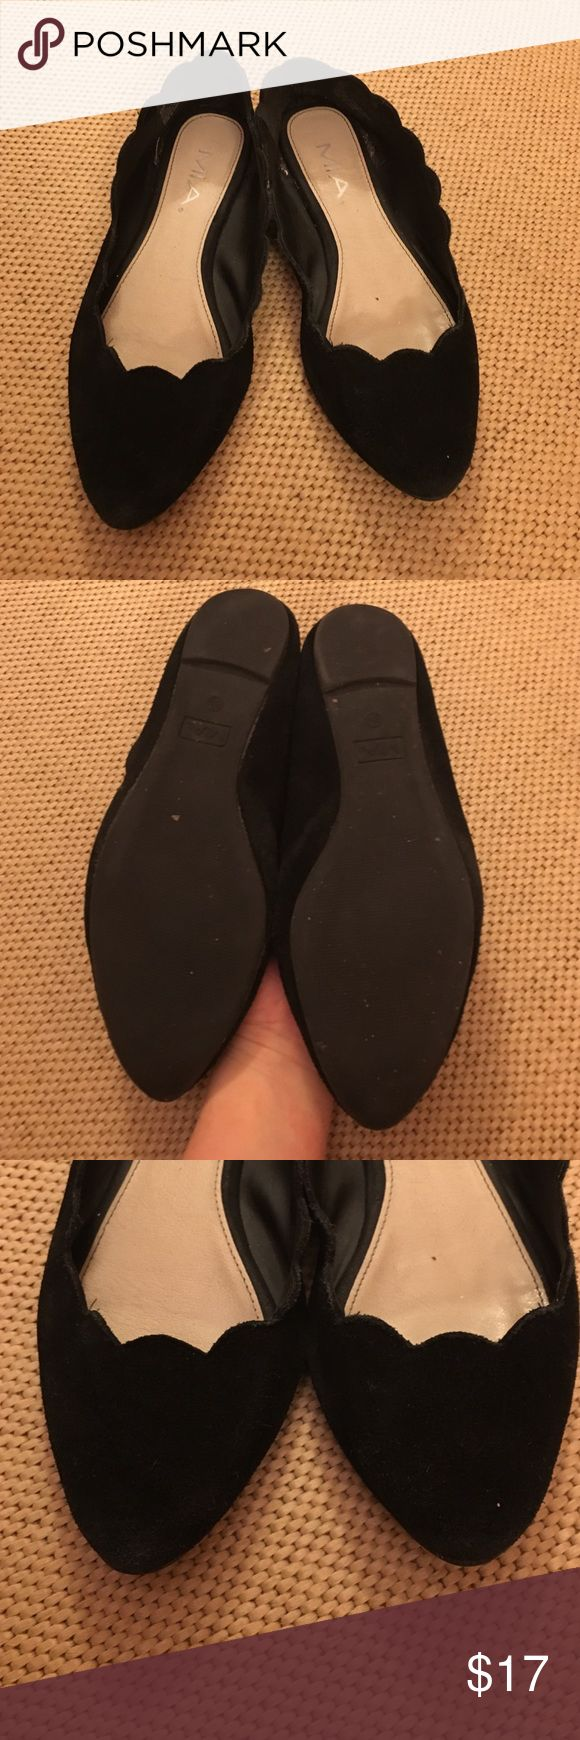 MIA black suede scalloped pointed ballet flats 8.5 Cute black suede ballet flats by MIA. Some wear on the suede as well as some dirt. Soles still in good condition. Some wear on the inside. Still has a lot of life left in them. MIA Shoes Flats & Loafers